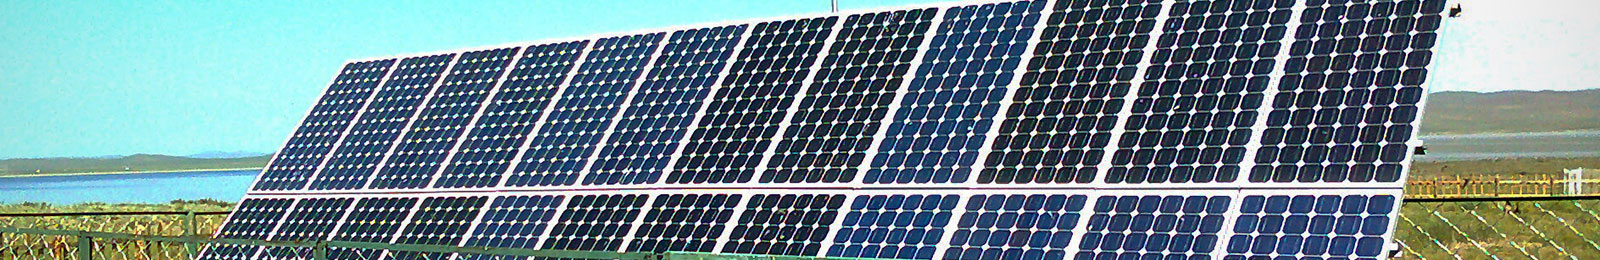 Solar Project Developmentpage banner image